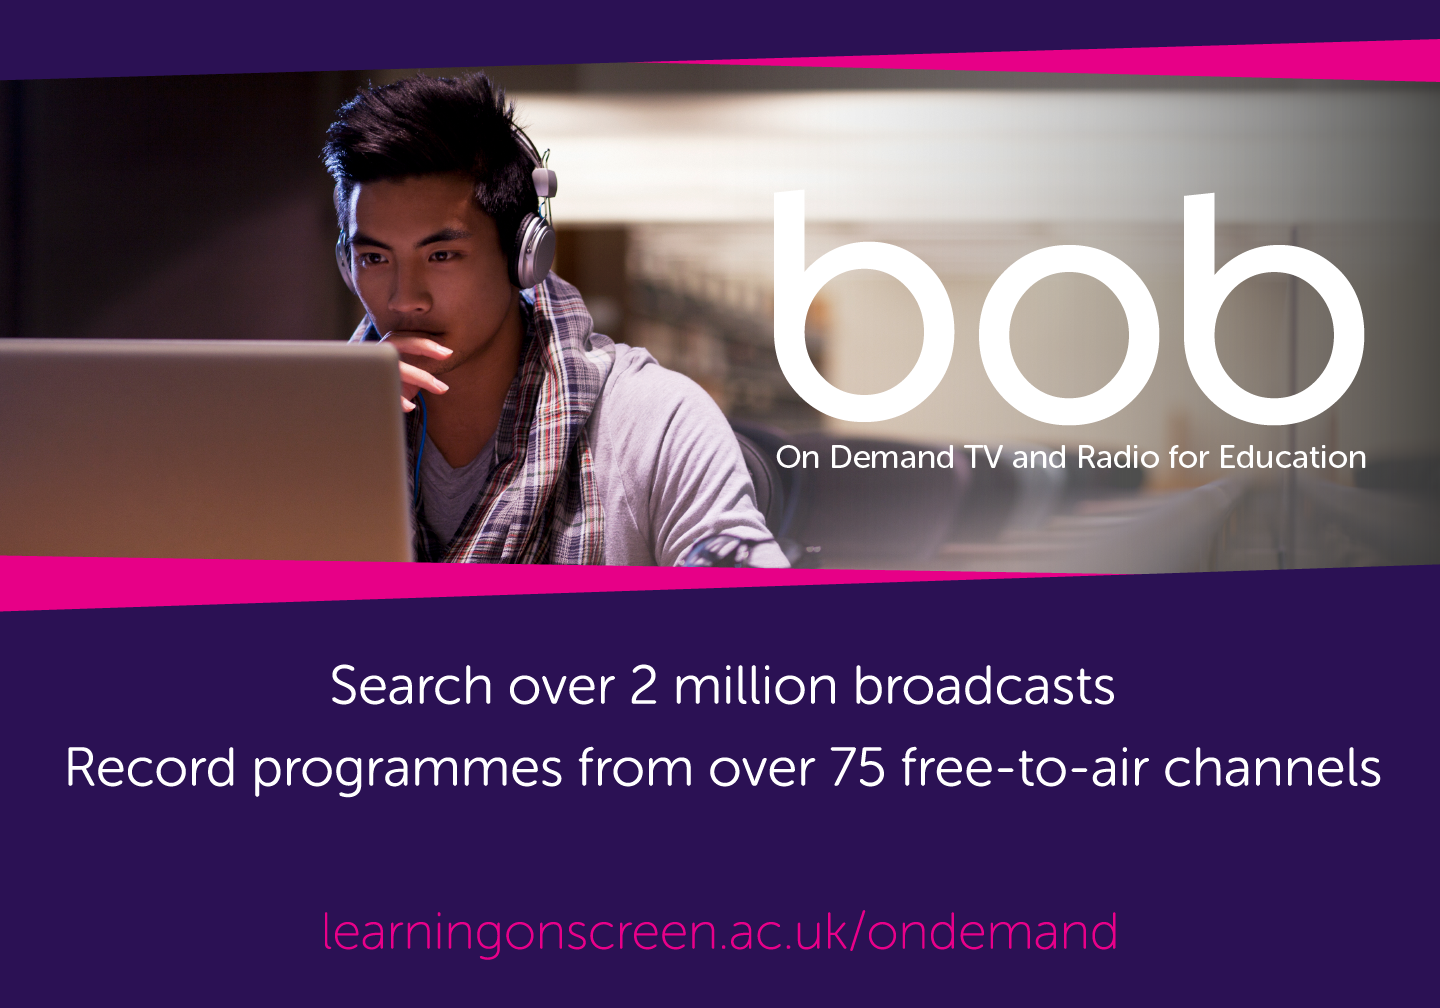 search over 2 million programmes from 75 channels